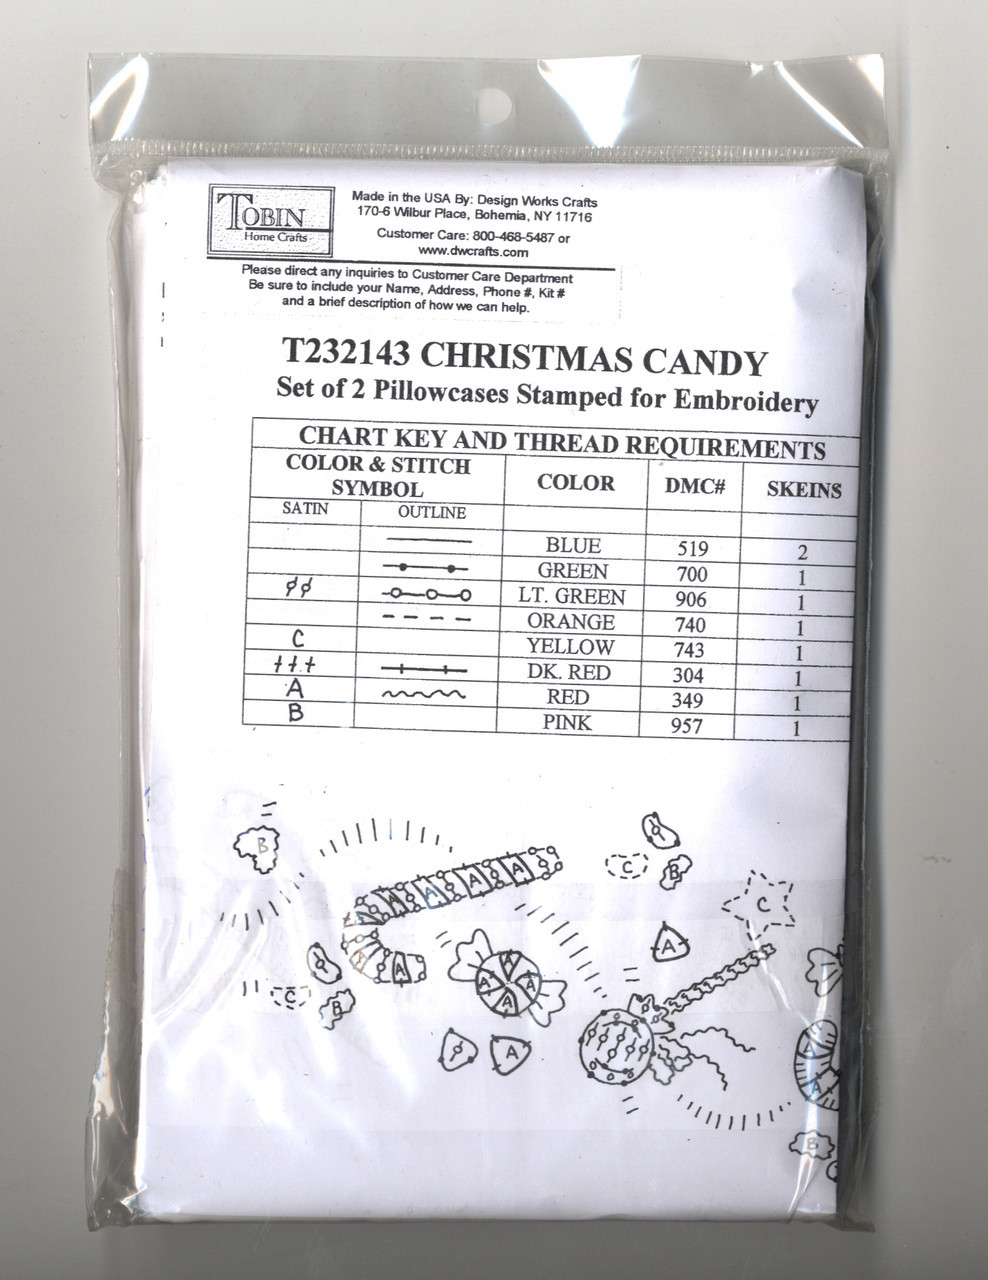 Design Works - Christmas Candy Pillowcases (2)